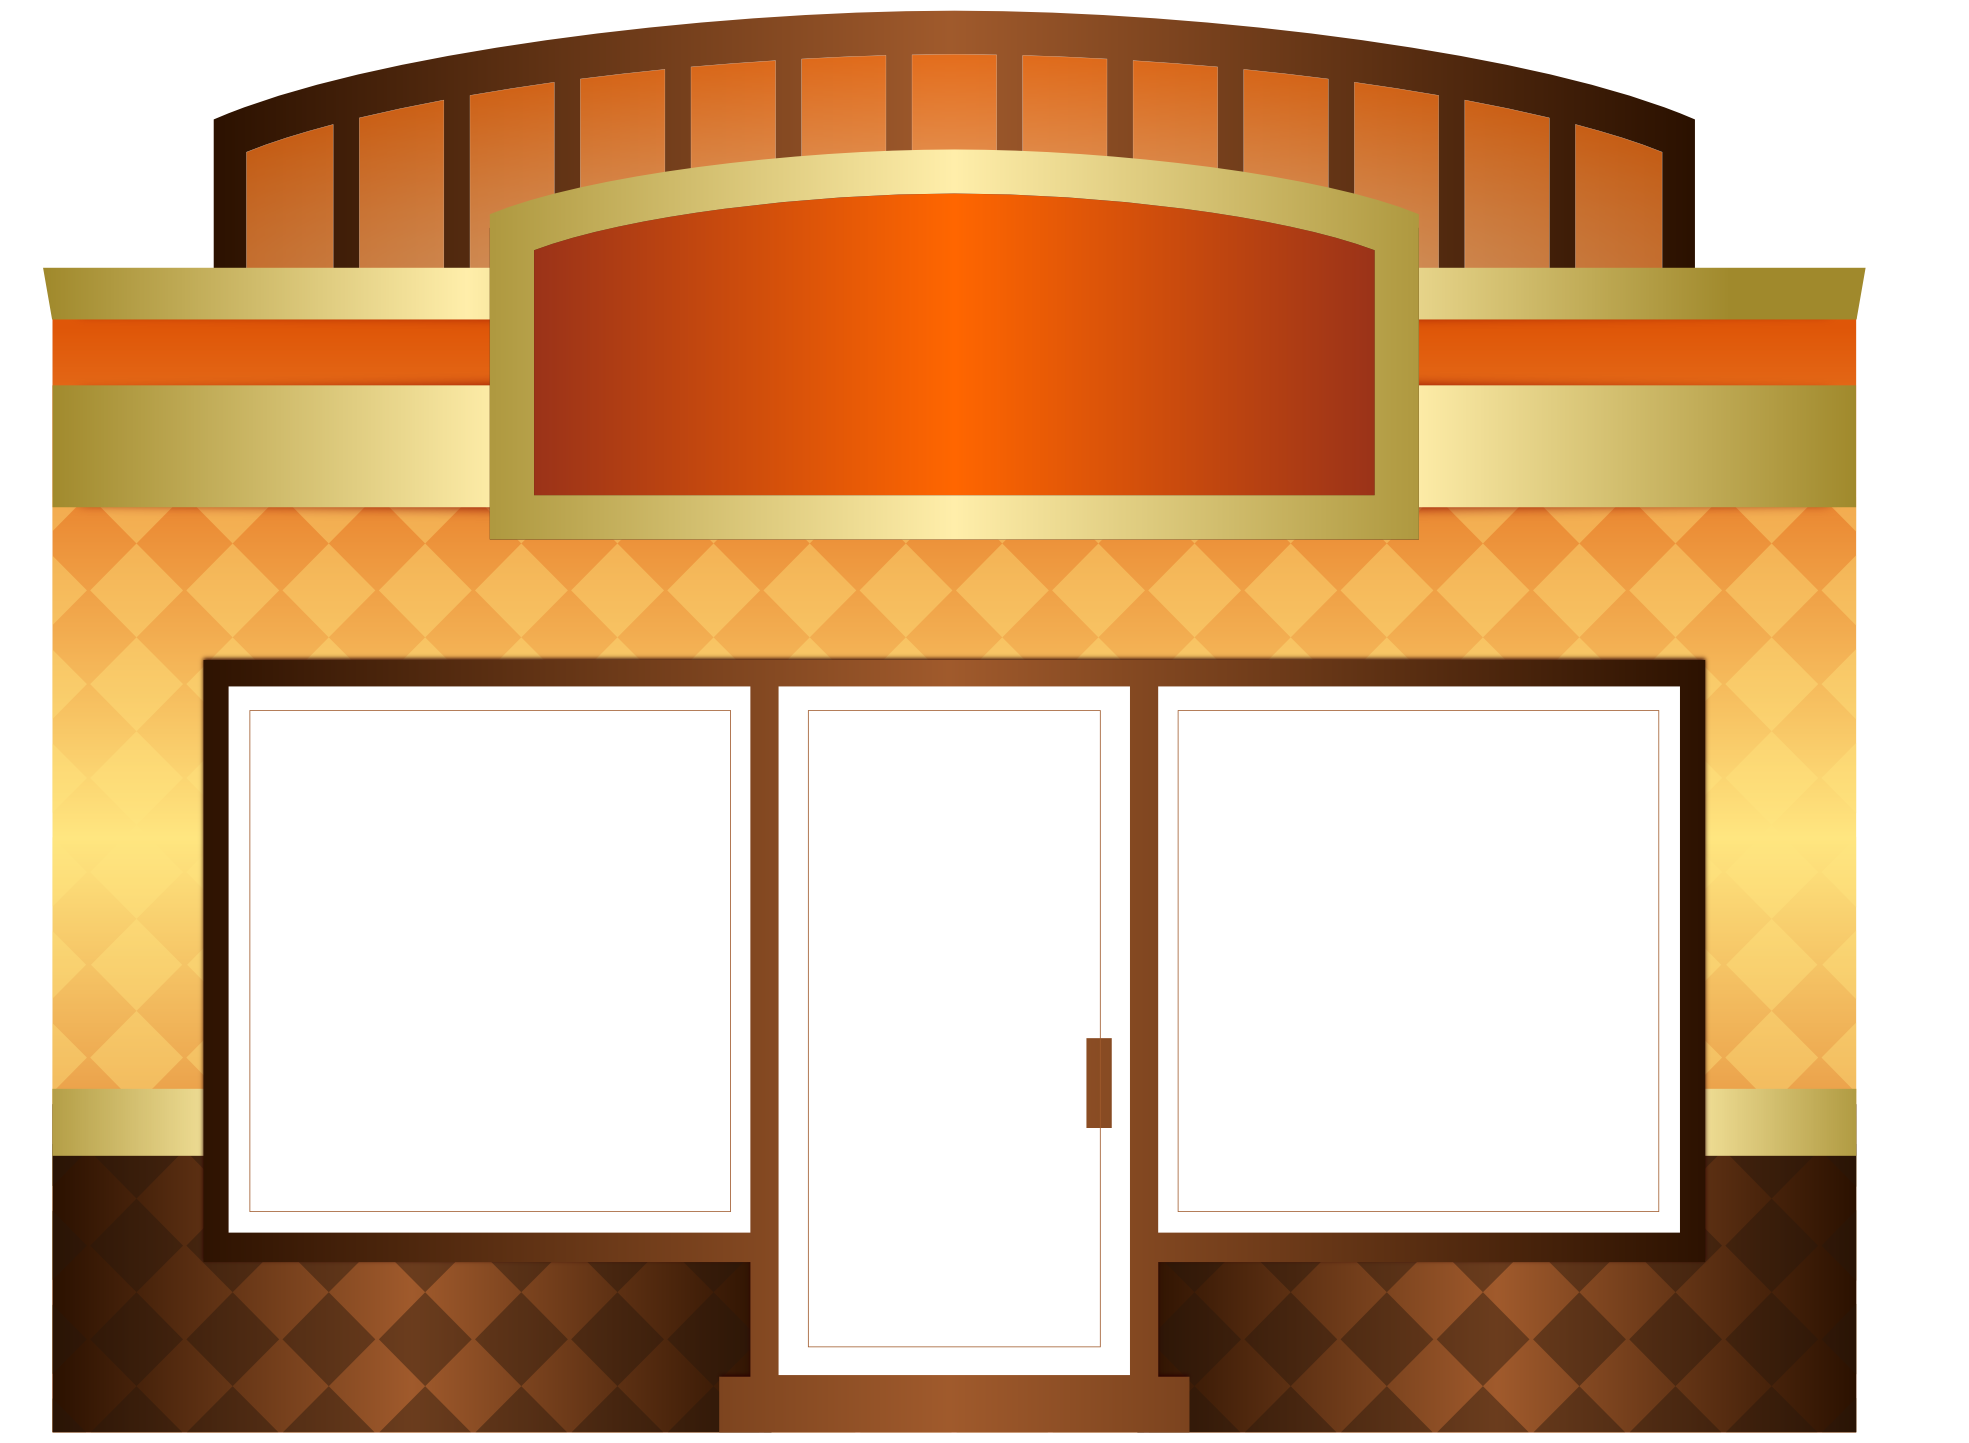 Clipart storefronts free stock Free Storefront Cliparts, Download Free Clip Art, Free Clip Art on ... free stock